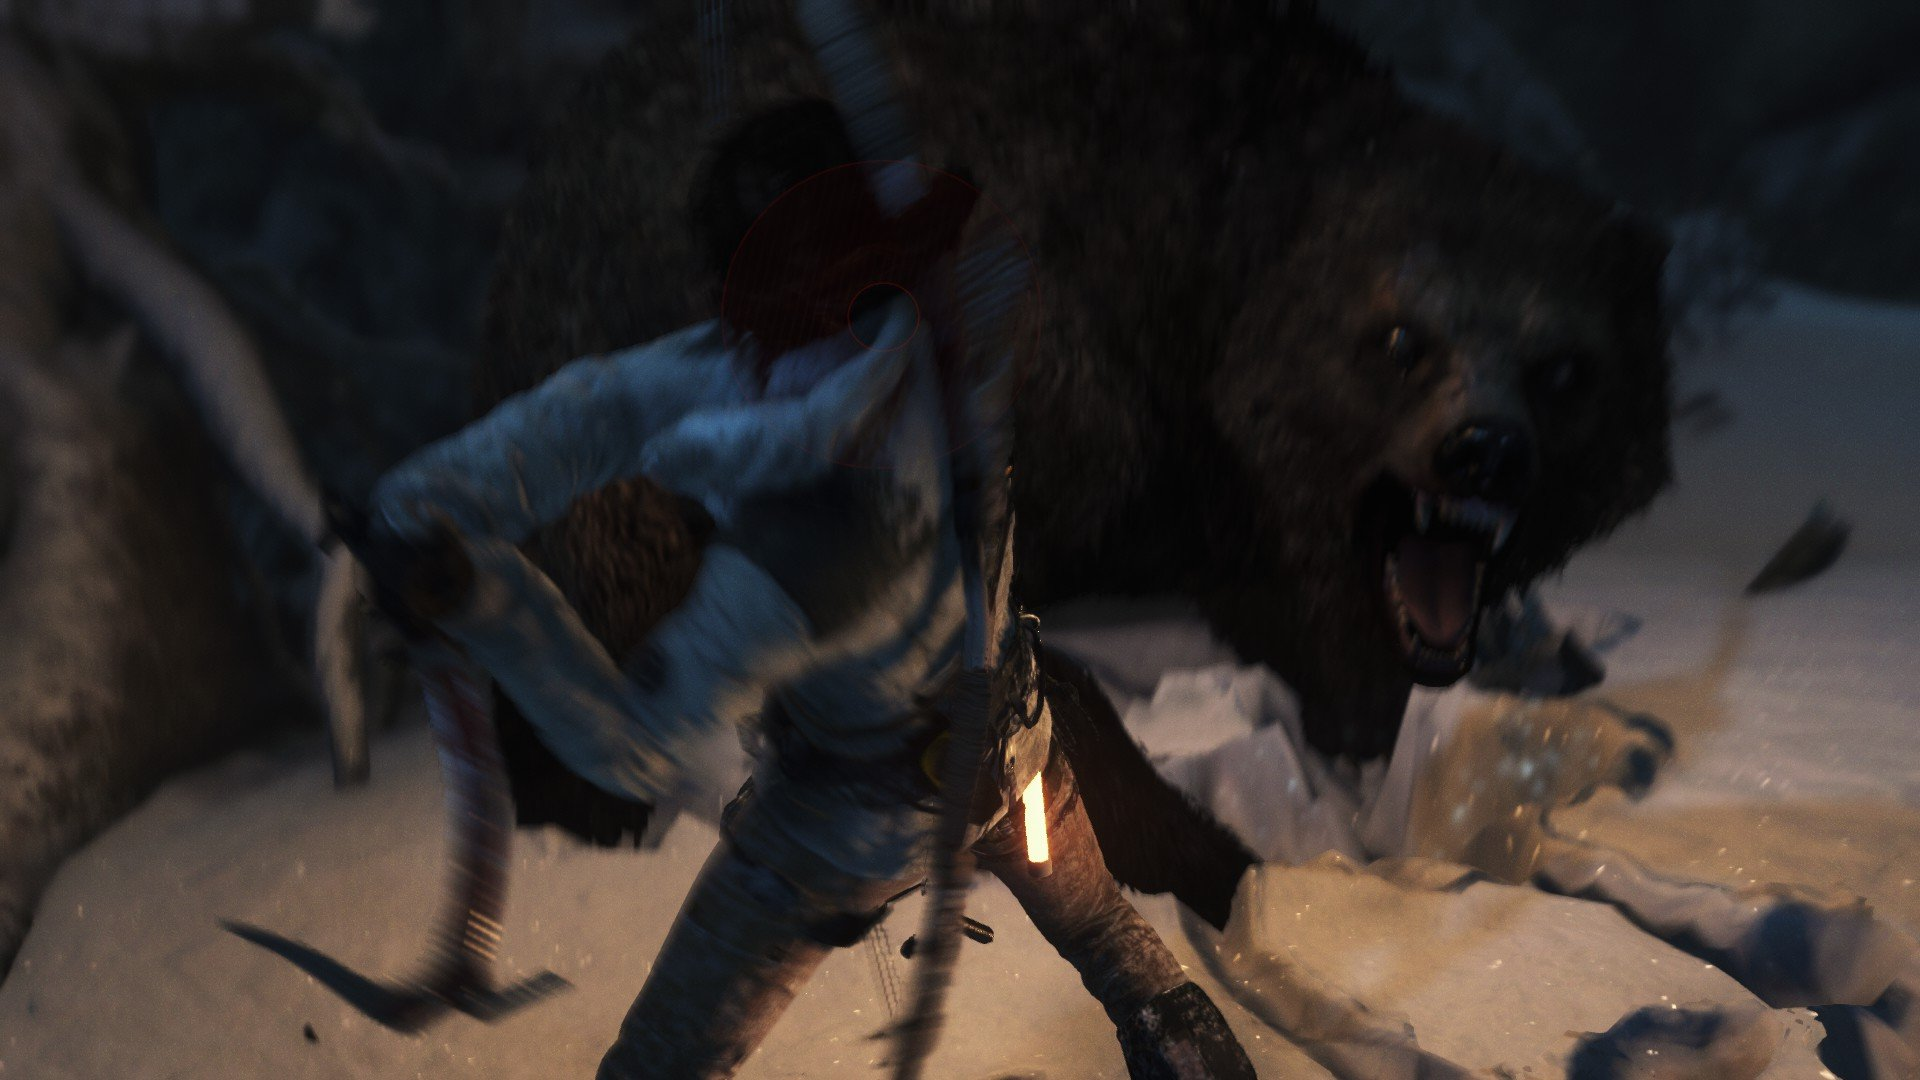 You ever had your life flash before your eyes? That happened in this fight with a bear.